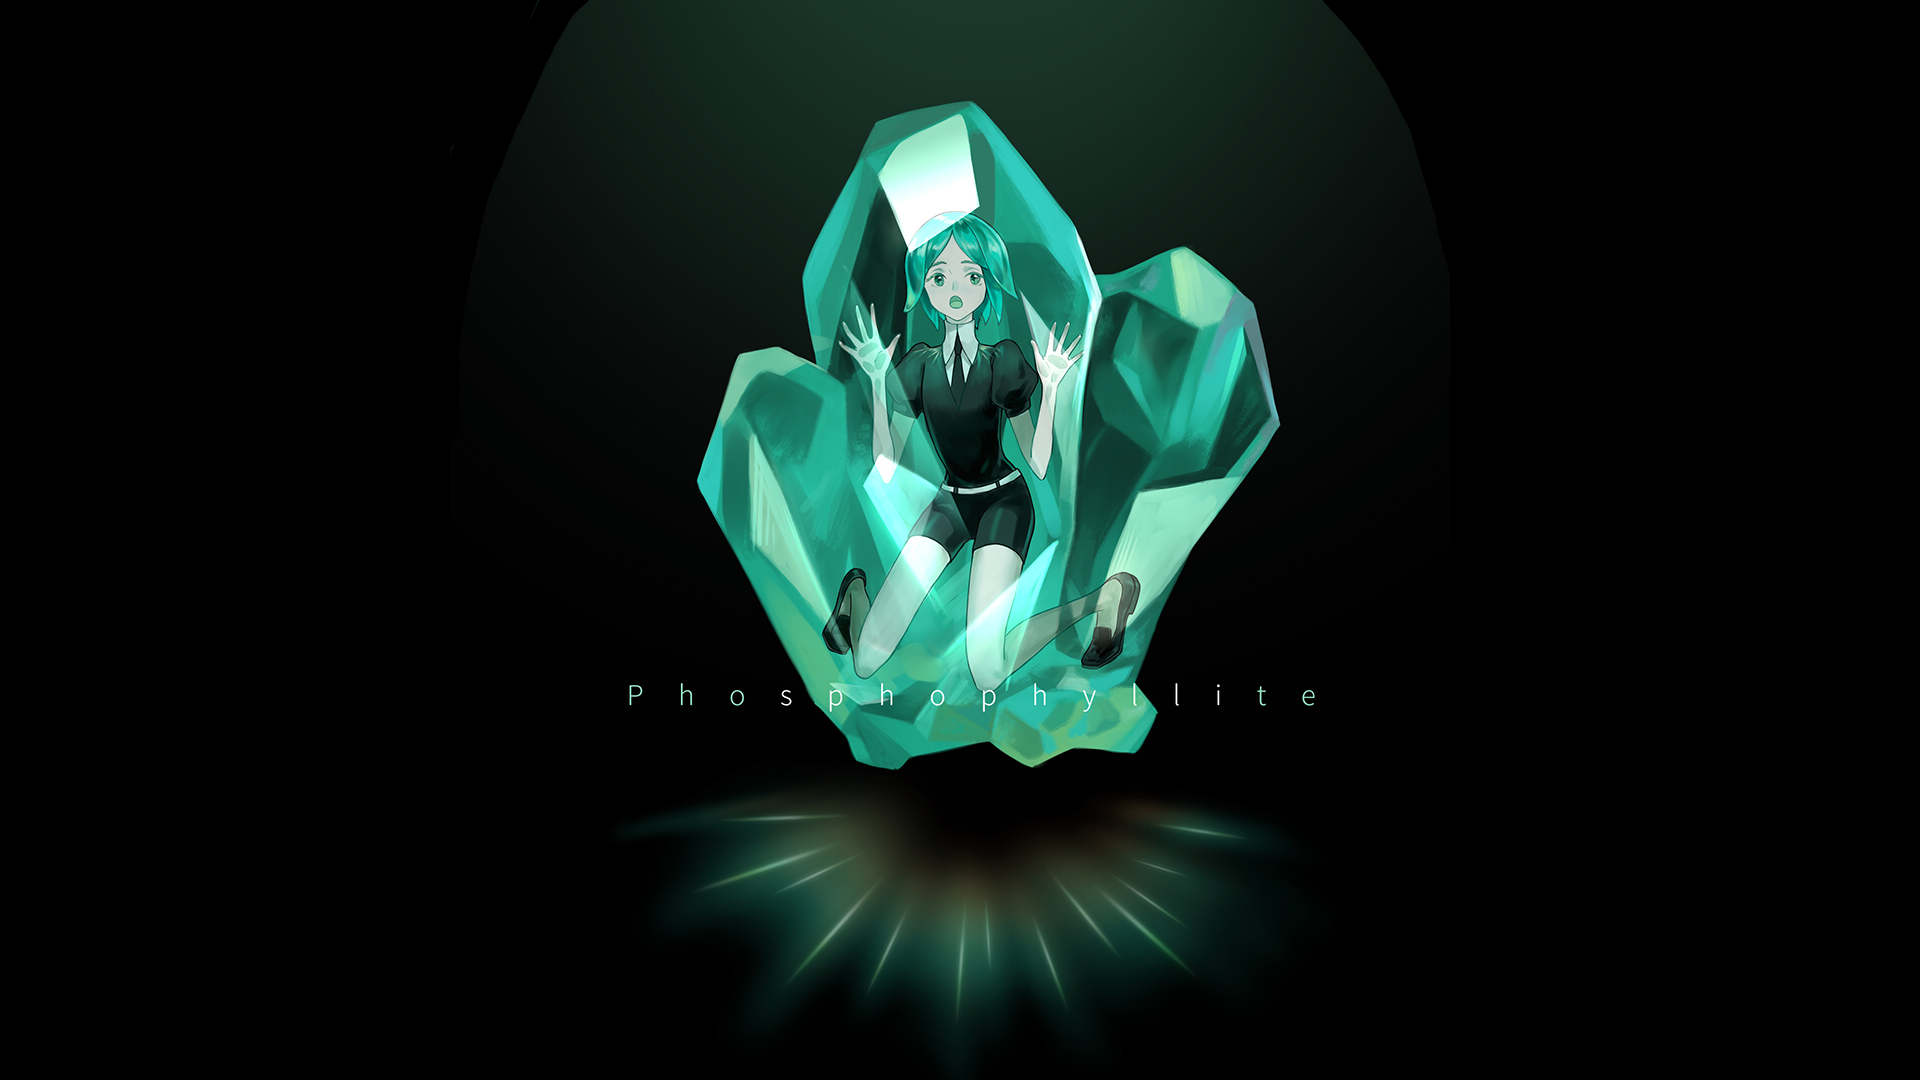 Land Of The Lustrous Phosphophyllite 11 Ps4wallpapers Com